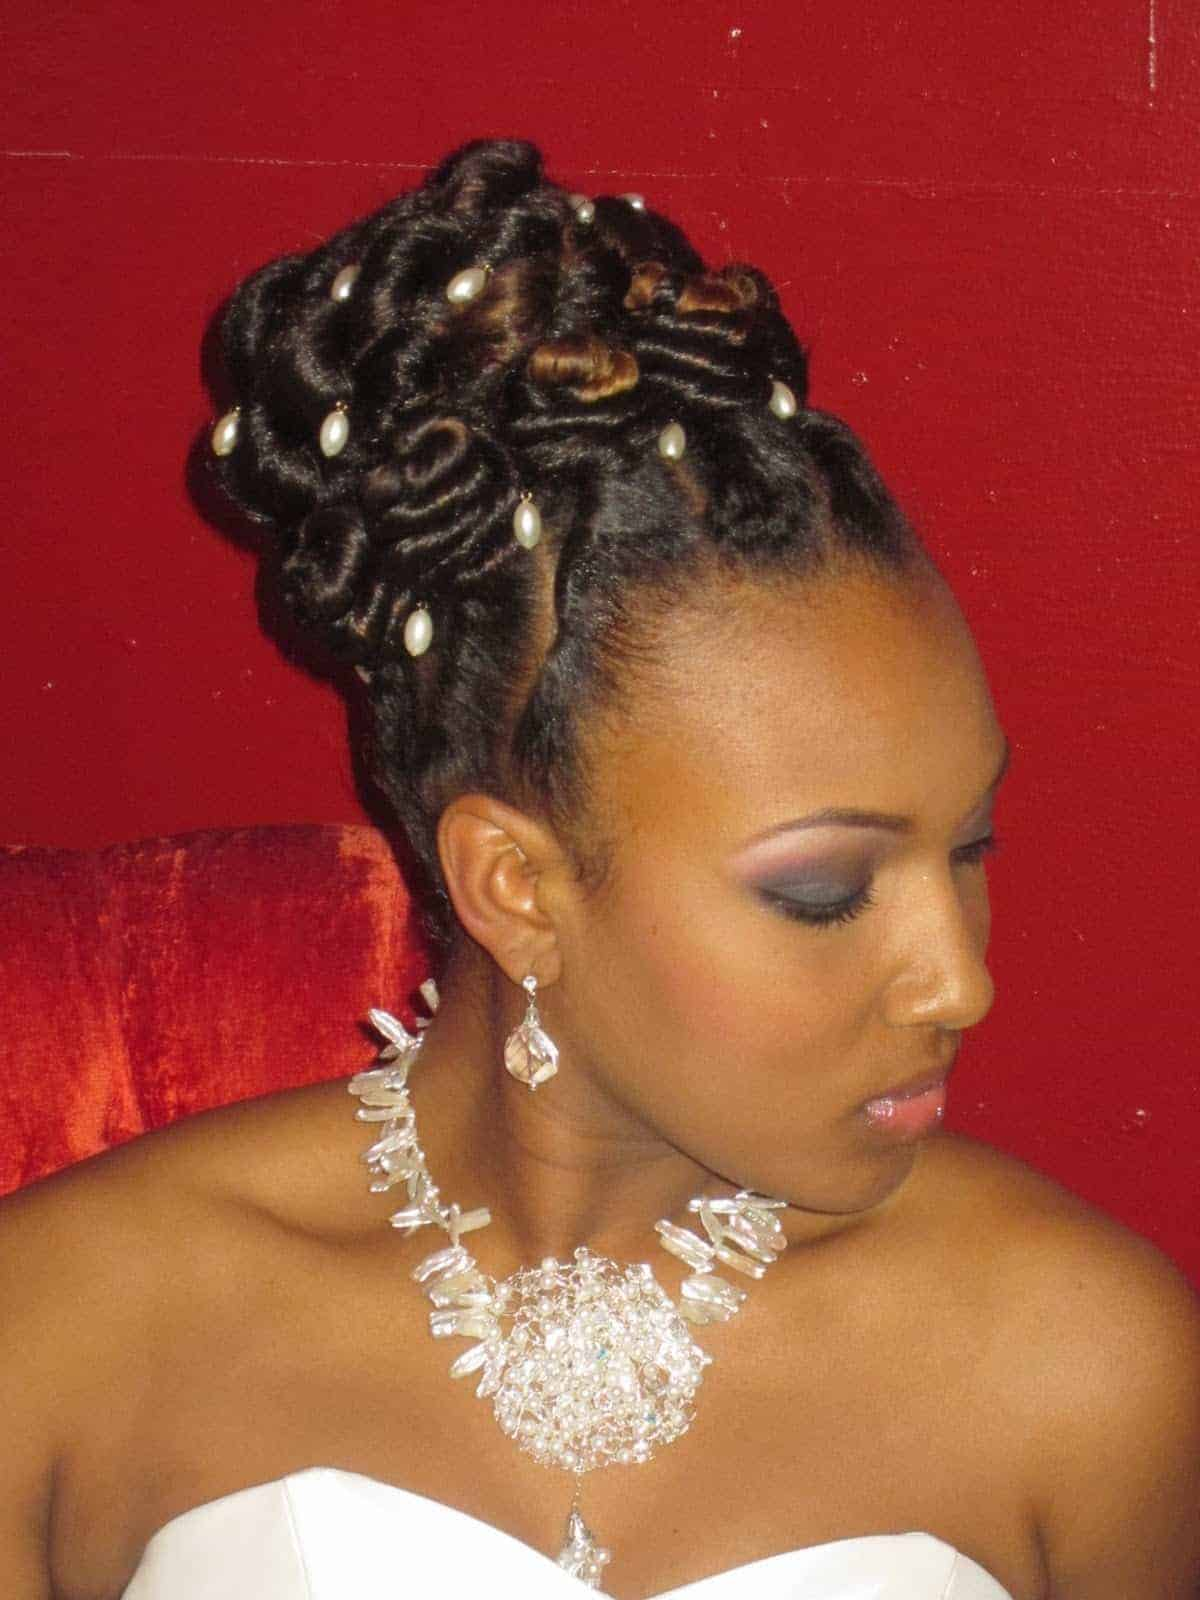 Black hairstyles with twists fade haircut twist hairstyles women styles hairstyles makeup tutorials pmusecretfo Images